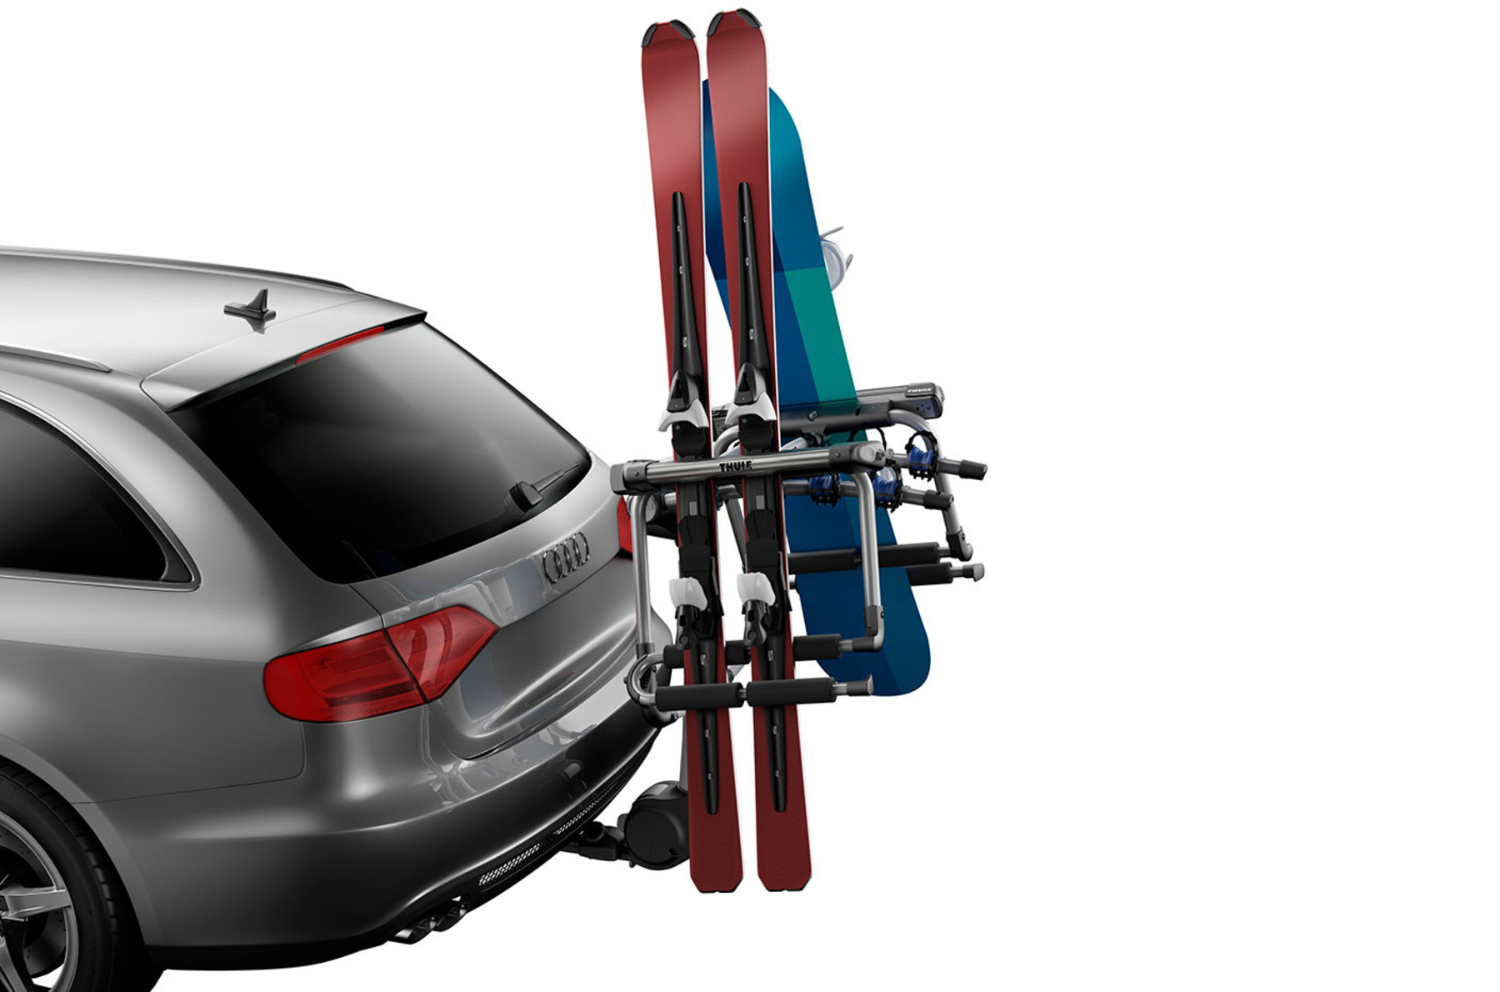 the best way to transport skis by car